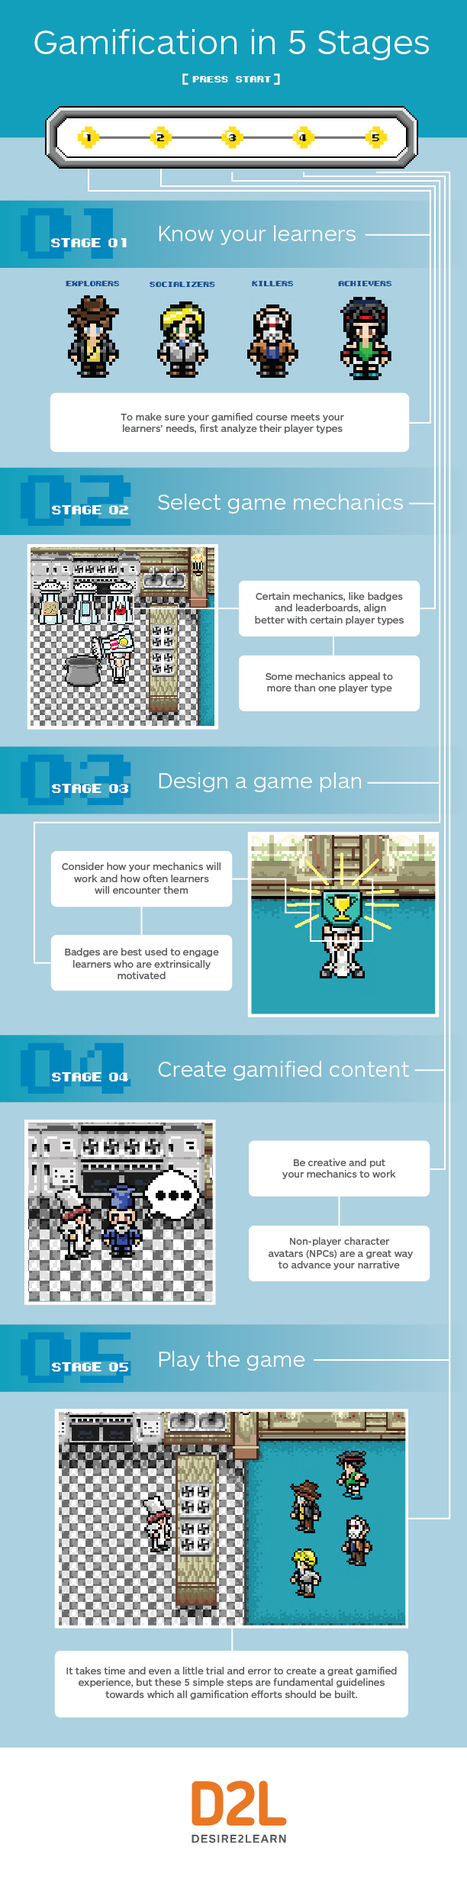 5 Stages to #Gamification #Infographic  | Digital Delights - Avatars, Virtual Worlds, Gamification | Scoop.it